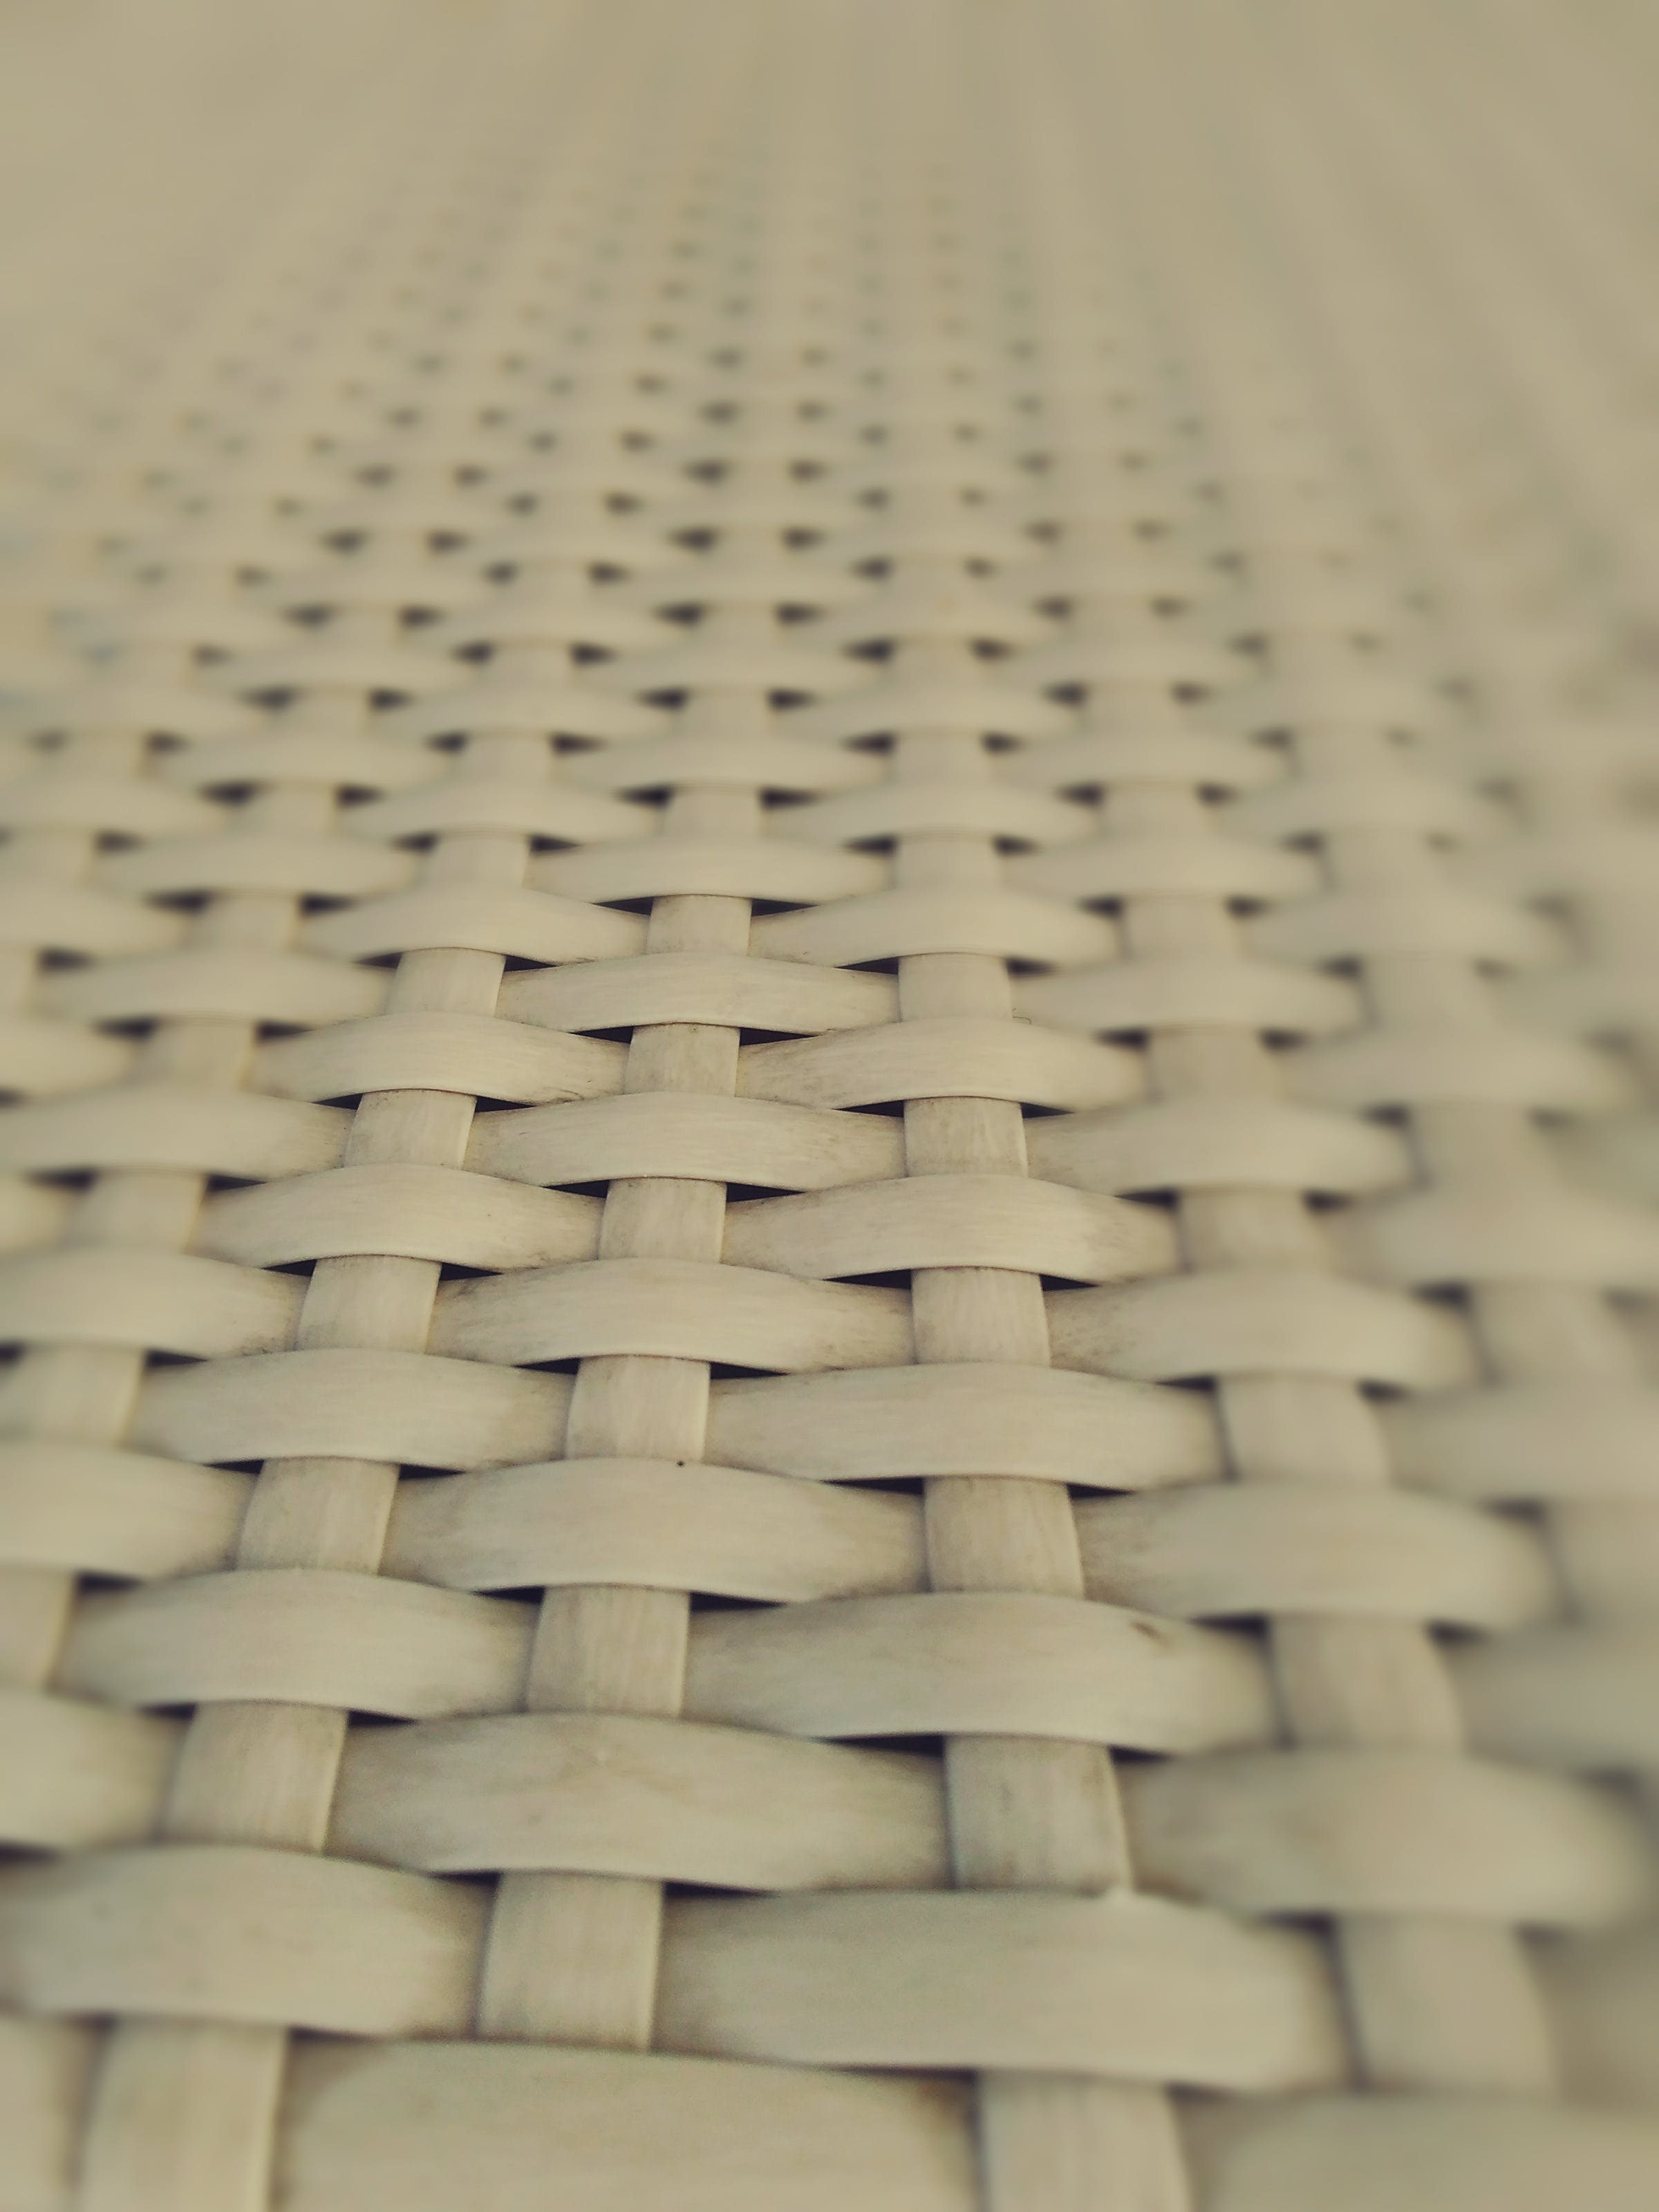 Free stock photo of wood, pattern, texture, blur